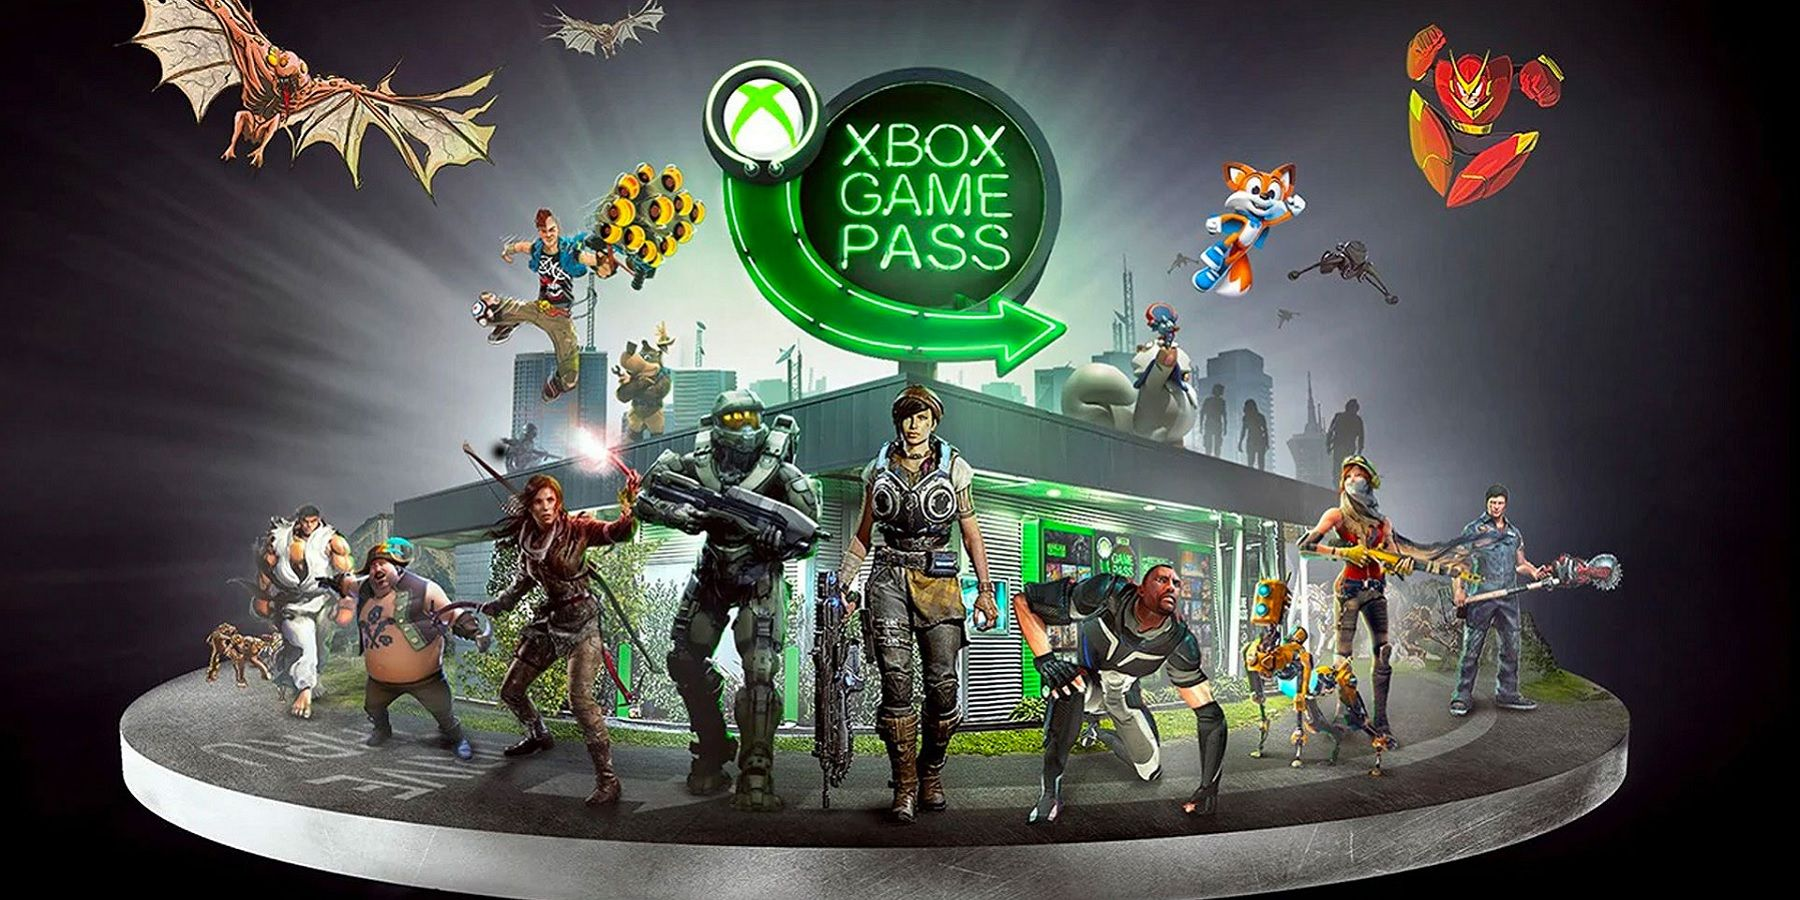 Xbox Game Pass Ultimate Perks for September 2021 Include Free Apex Legends Weapon Charm